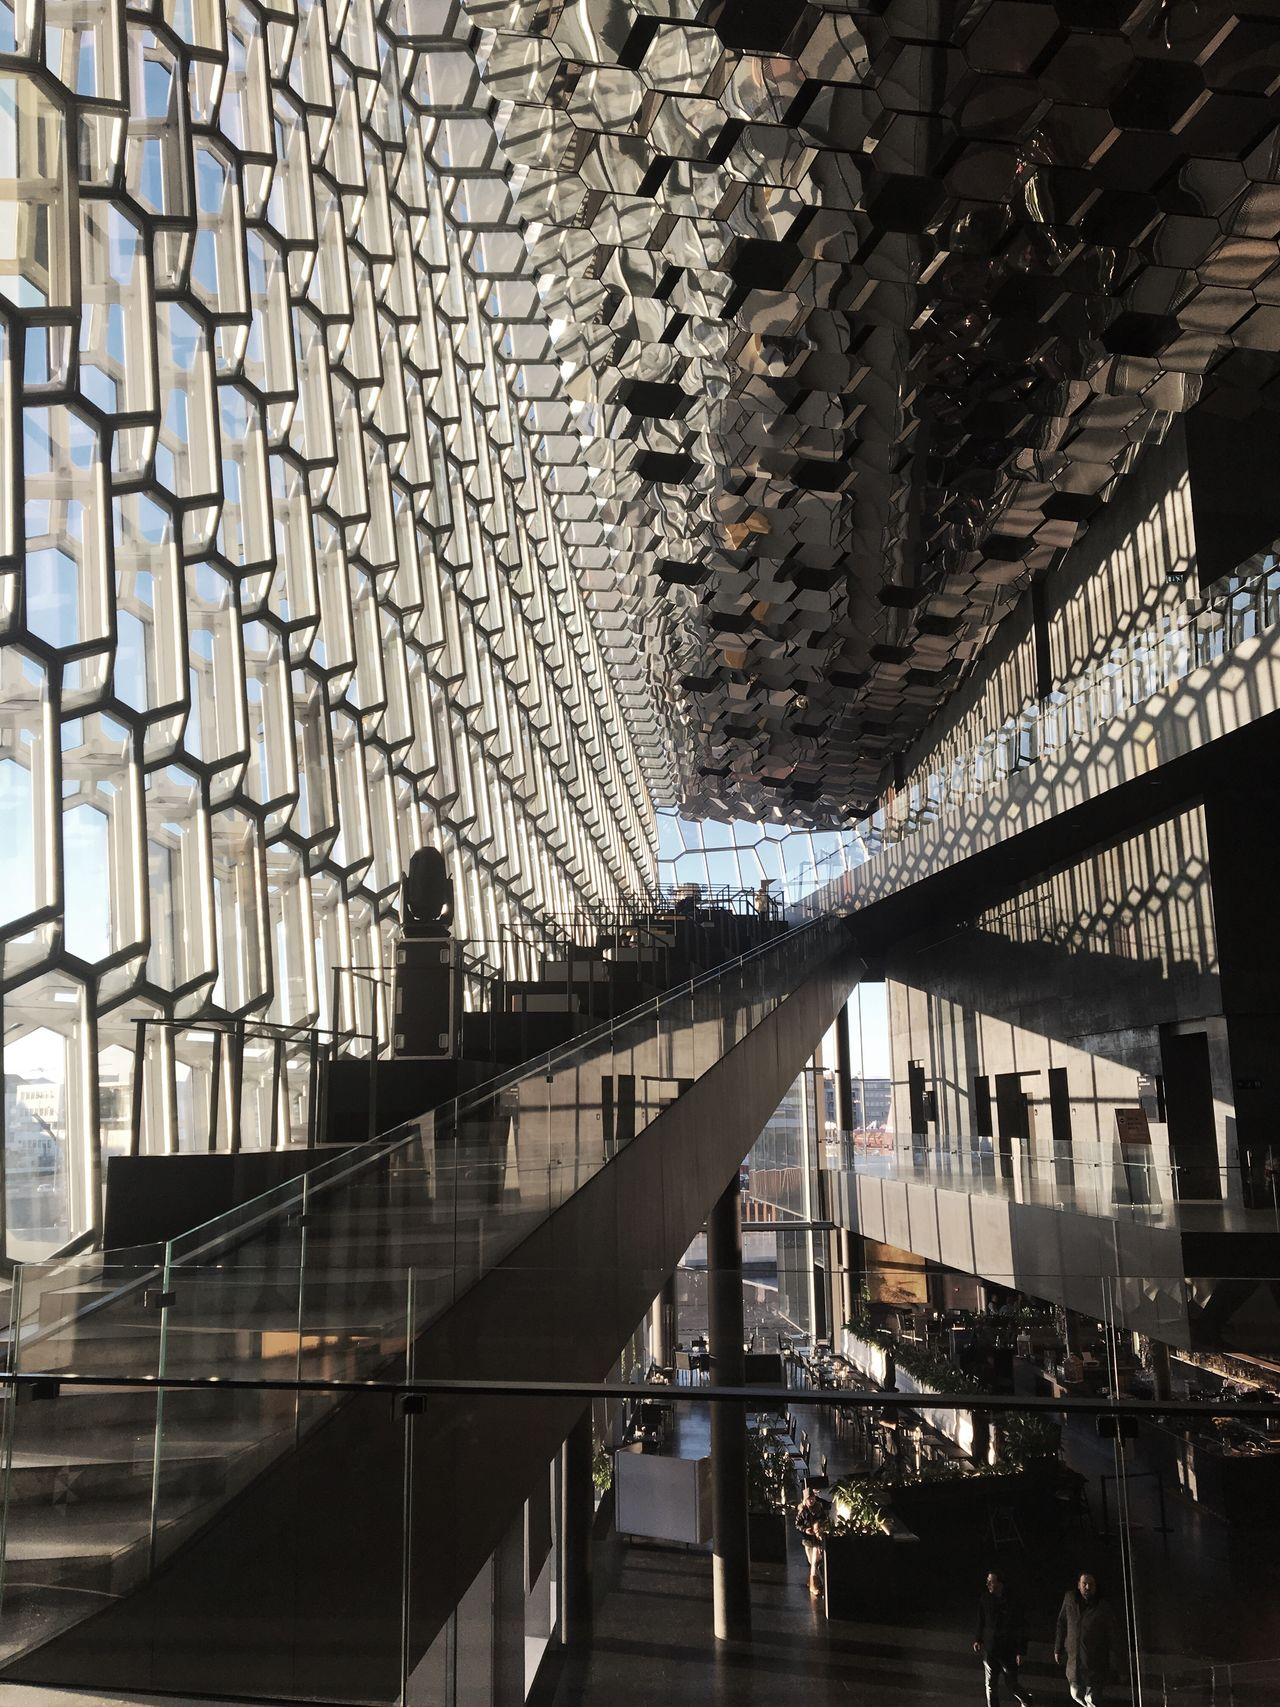 Lounge Architecture Indoors  Day No People Structure Olafur Eliasson Capital Cities  Iceland Interior Public Places Sunlight Window Indoors  Daylight Light And Shadow Architecture Diagonal Lines Honeycomb Glass Operahouse Harpa Harpa Reykjavik Architecture Glass Façade Reykjavik Opera House